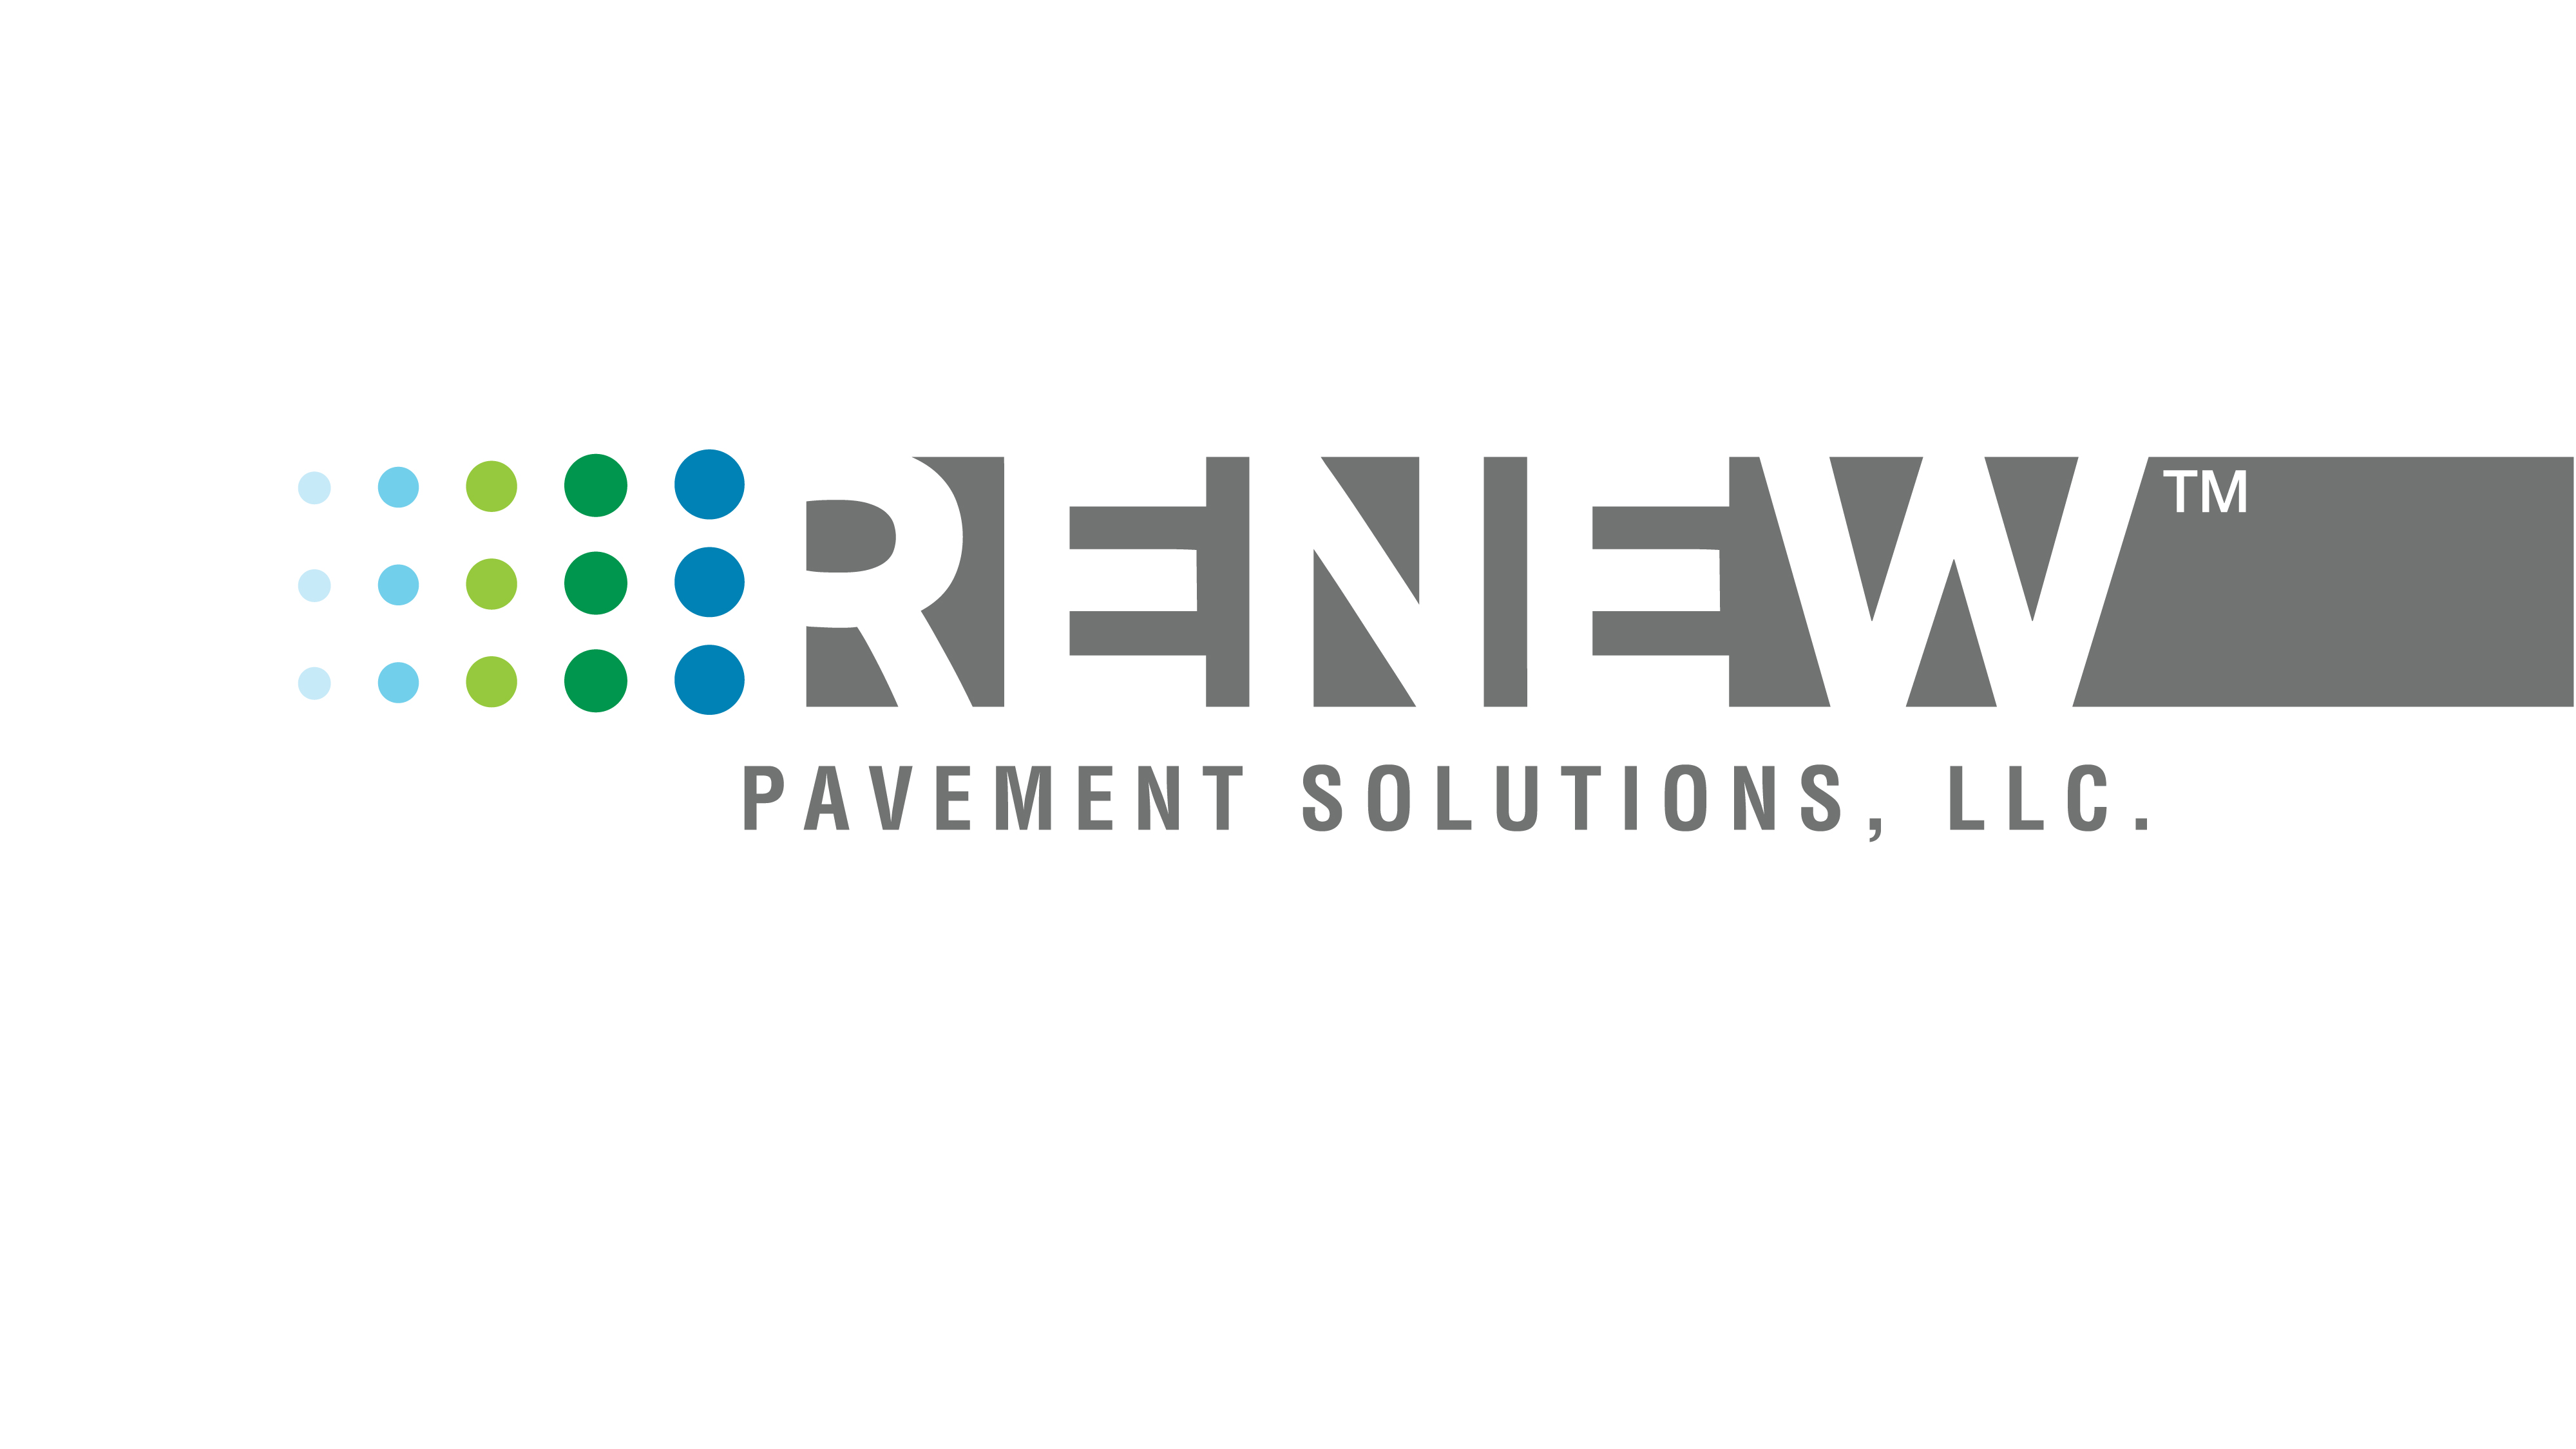 Renew Pavement Solutions